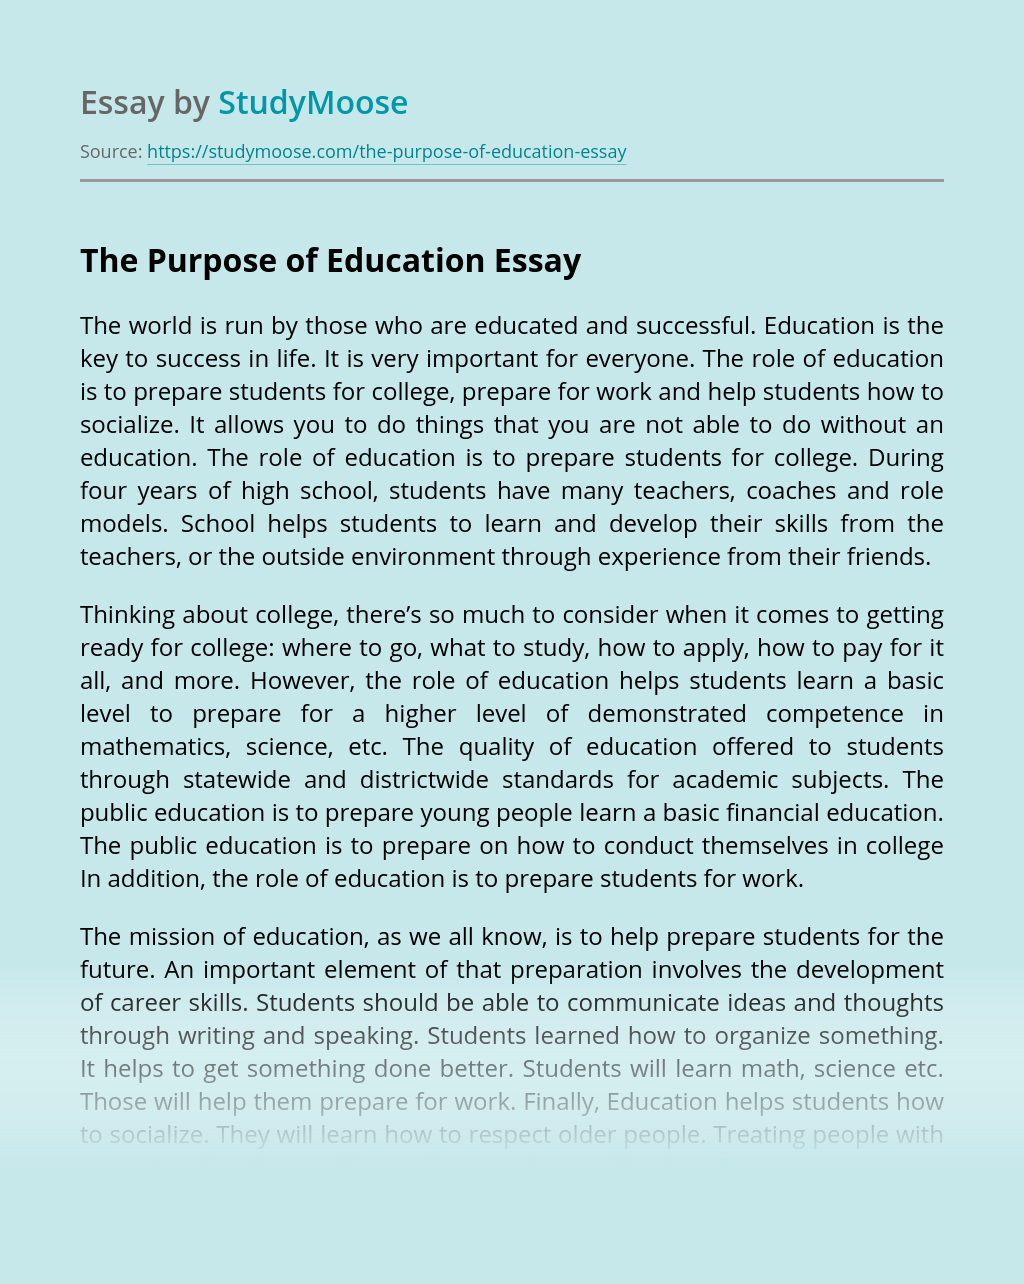 The Purpose of Education